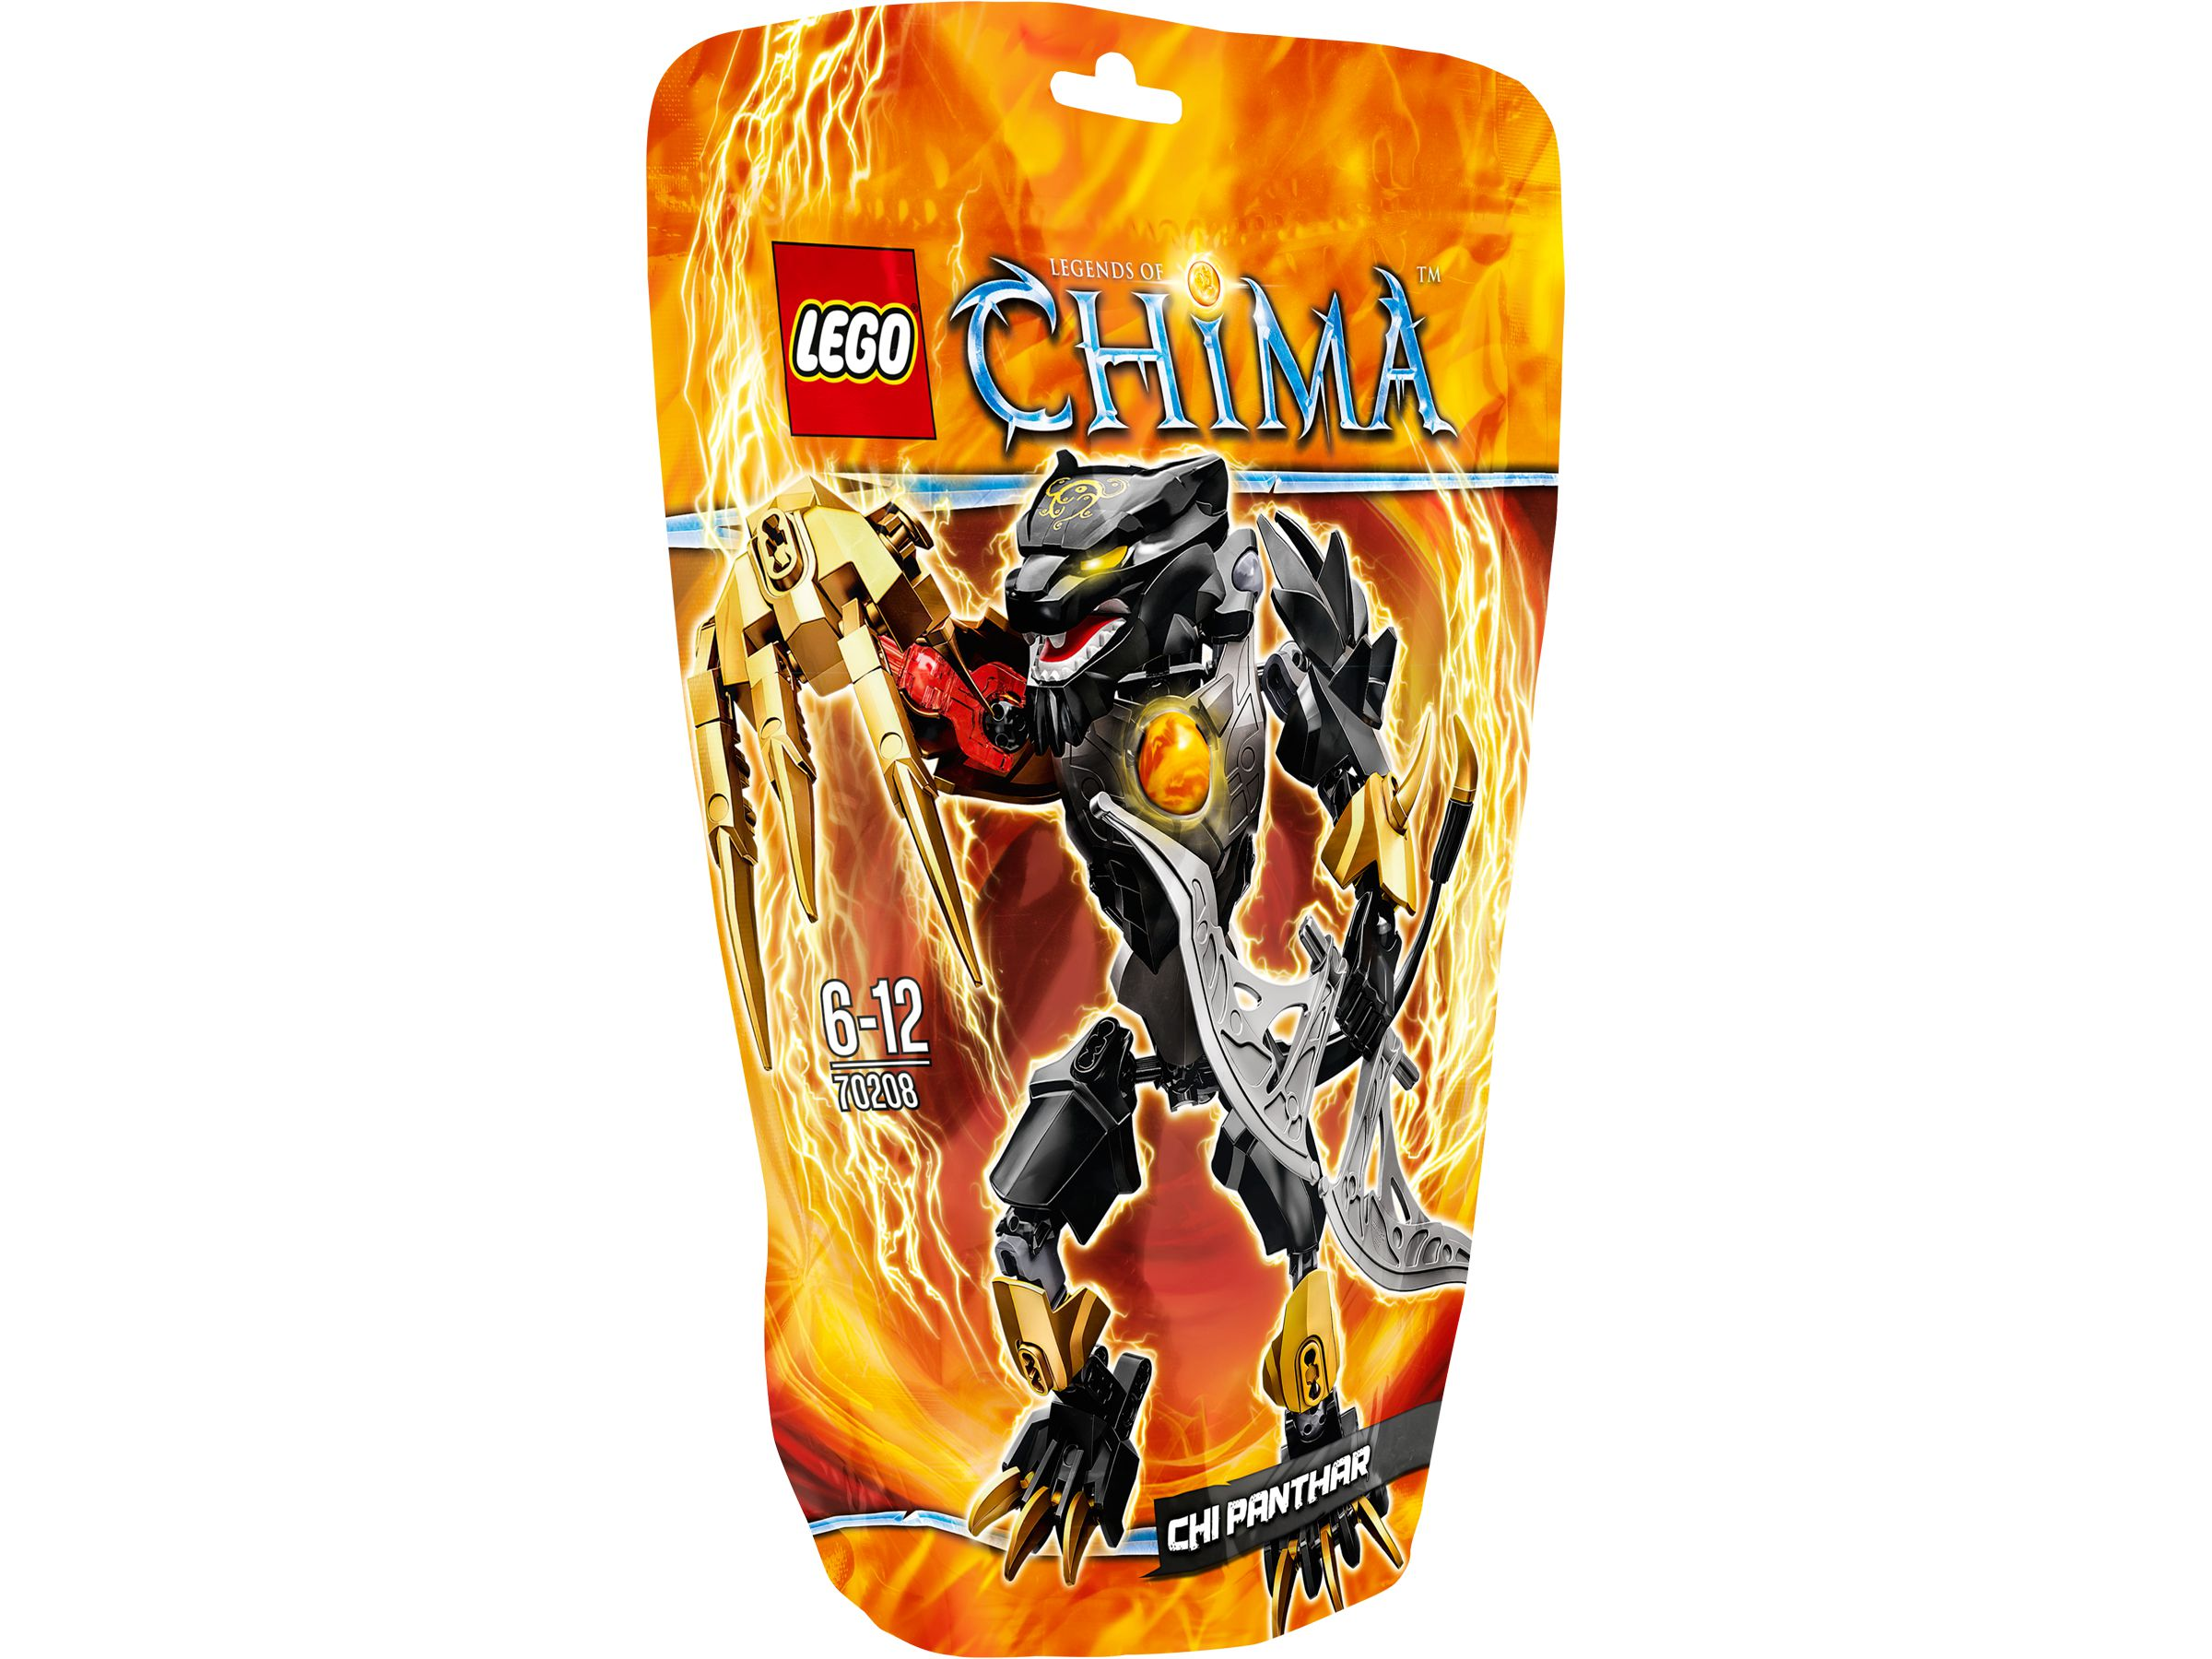 LEGO Legends Of Chima 70208 CHI Panthar LEGO_70208_alt1.jpg